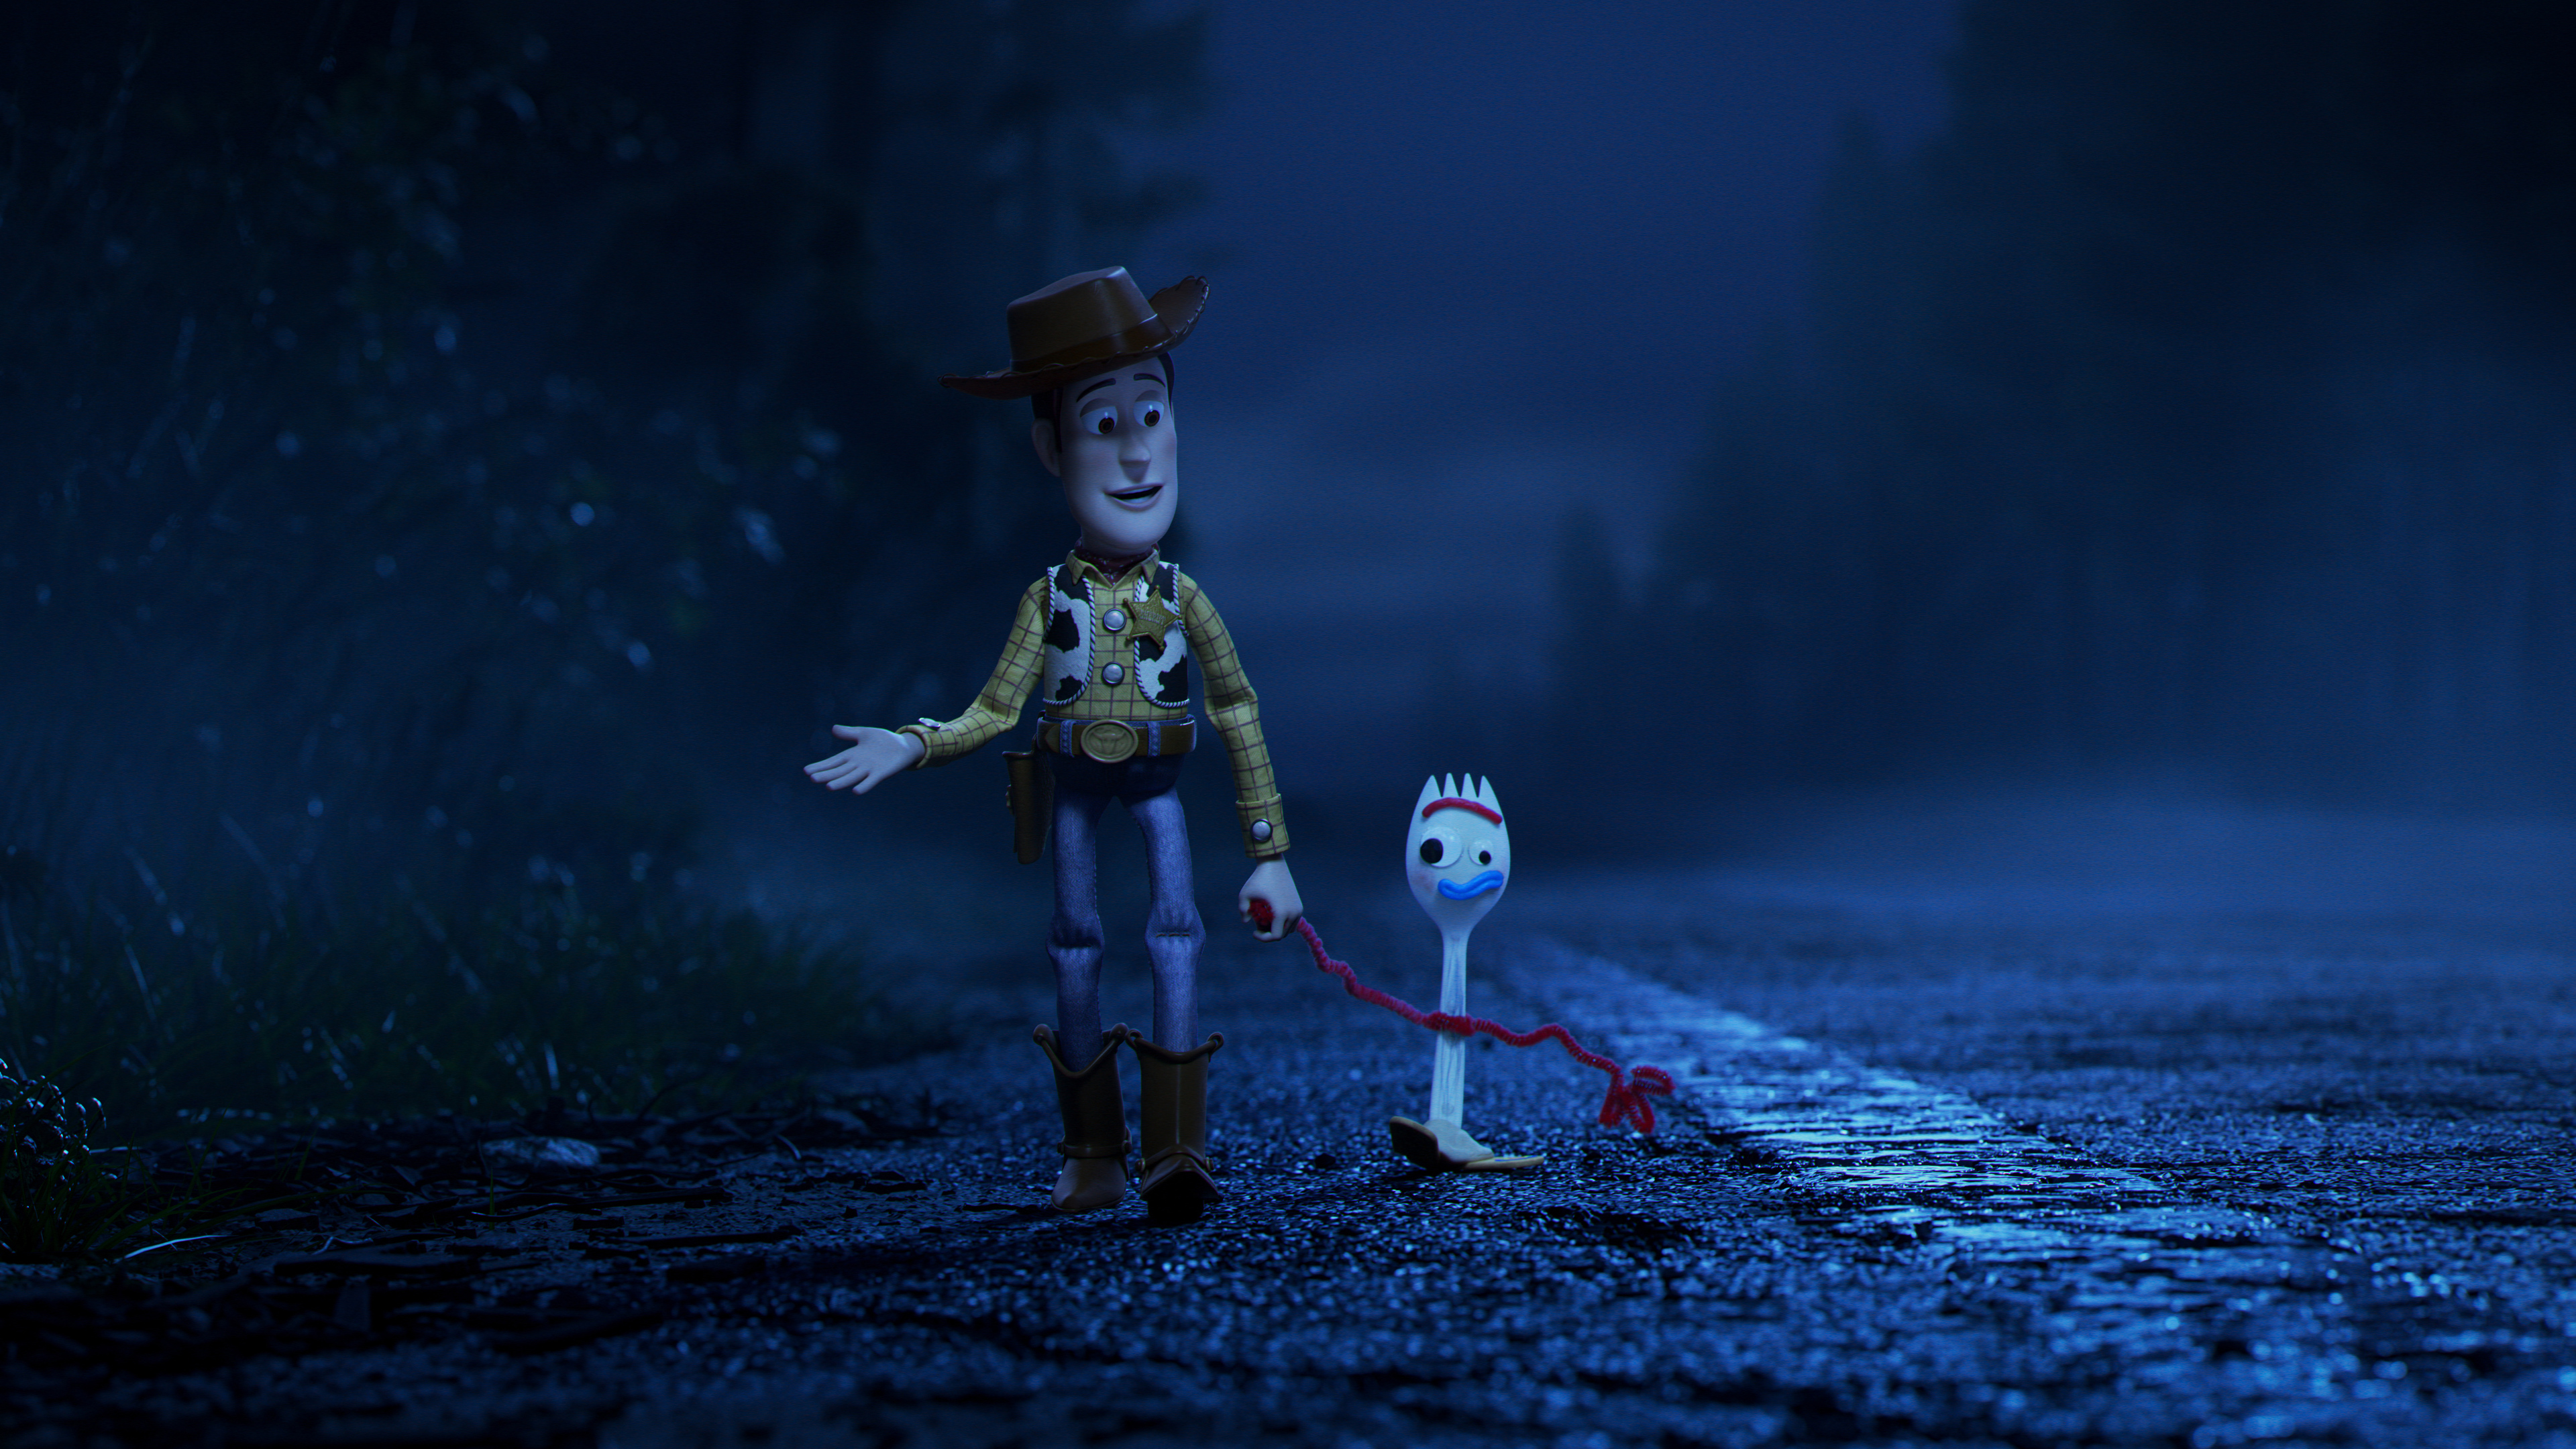 2019 toy story 4 1555208558 - 2019 Toy Story 4 - toy story 4 wallpapers, movies wallpapers, hd-wallpapers, animated movies wallpapers, 4k-wallpapers, 2019 movies wallpapers